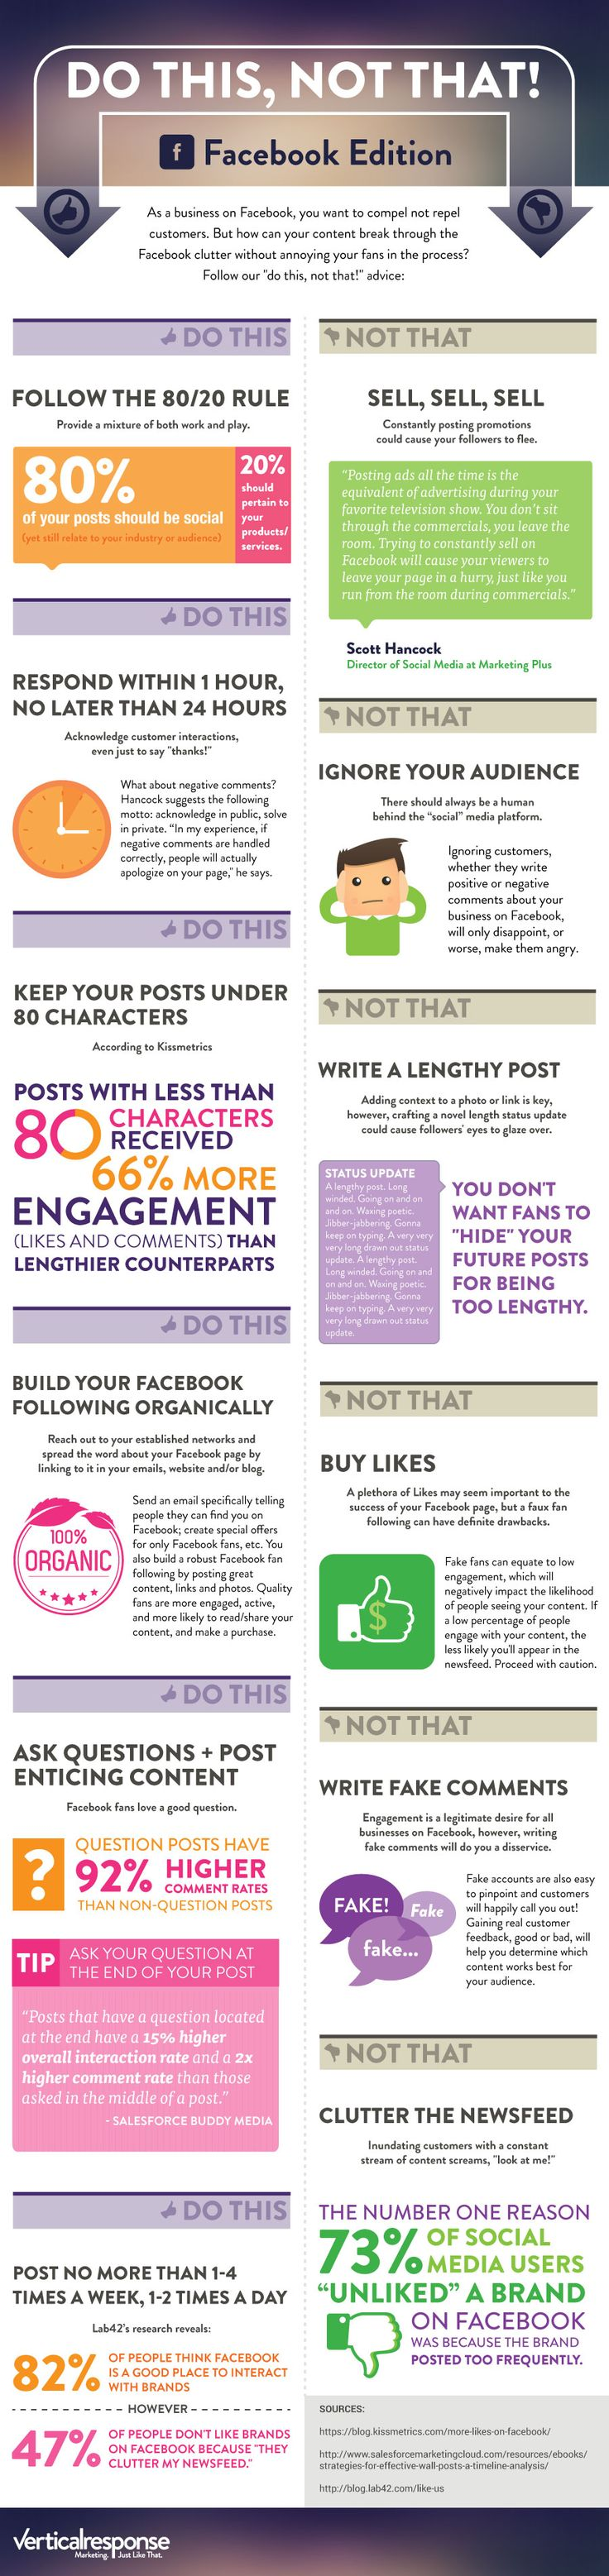 How Your Content Break Through The Facebook Clutter Without Annoying Your Fans [INFOGRAPHIC]